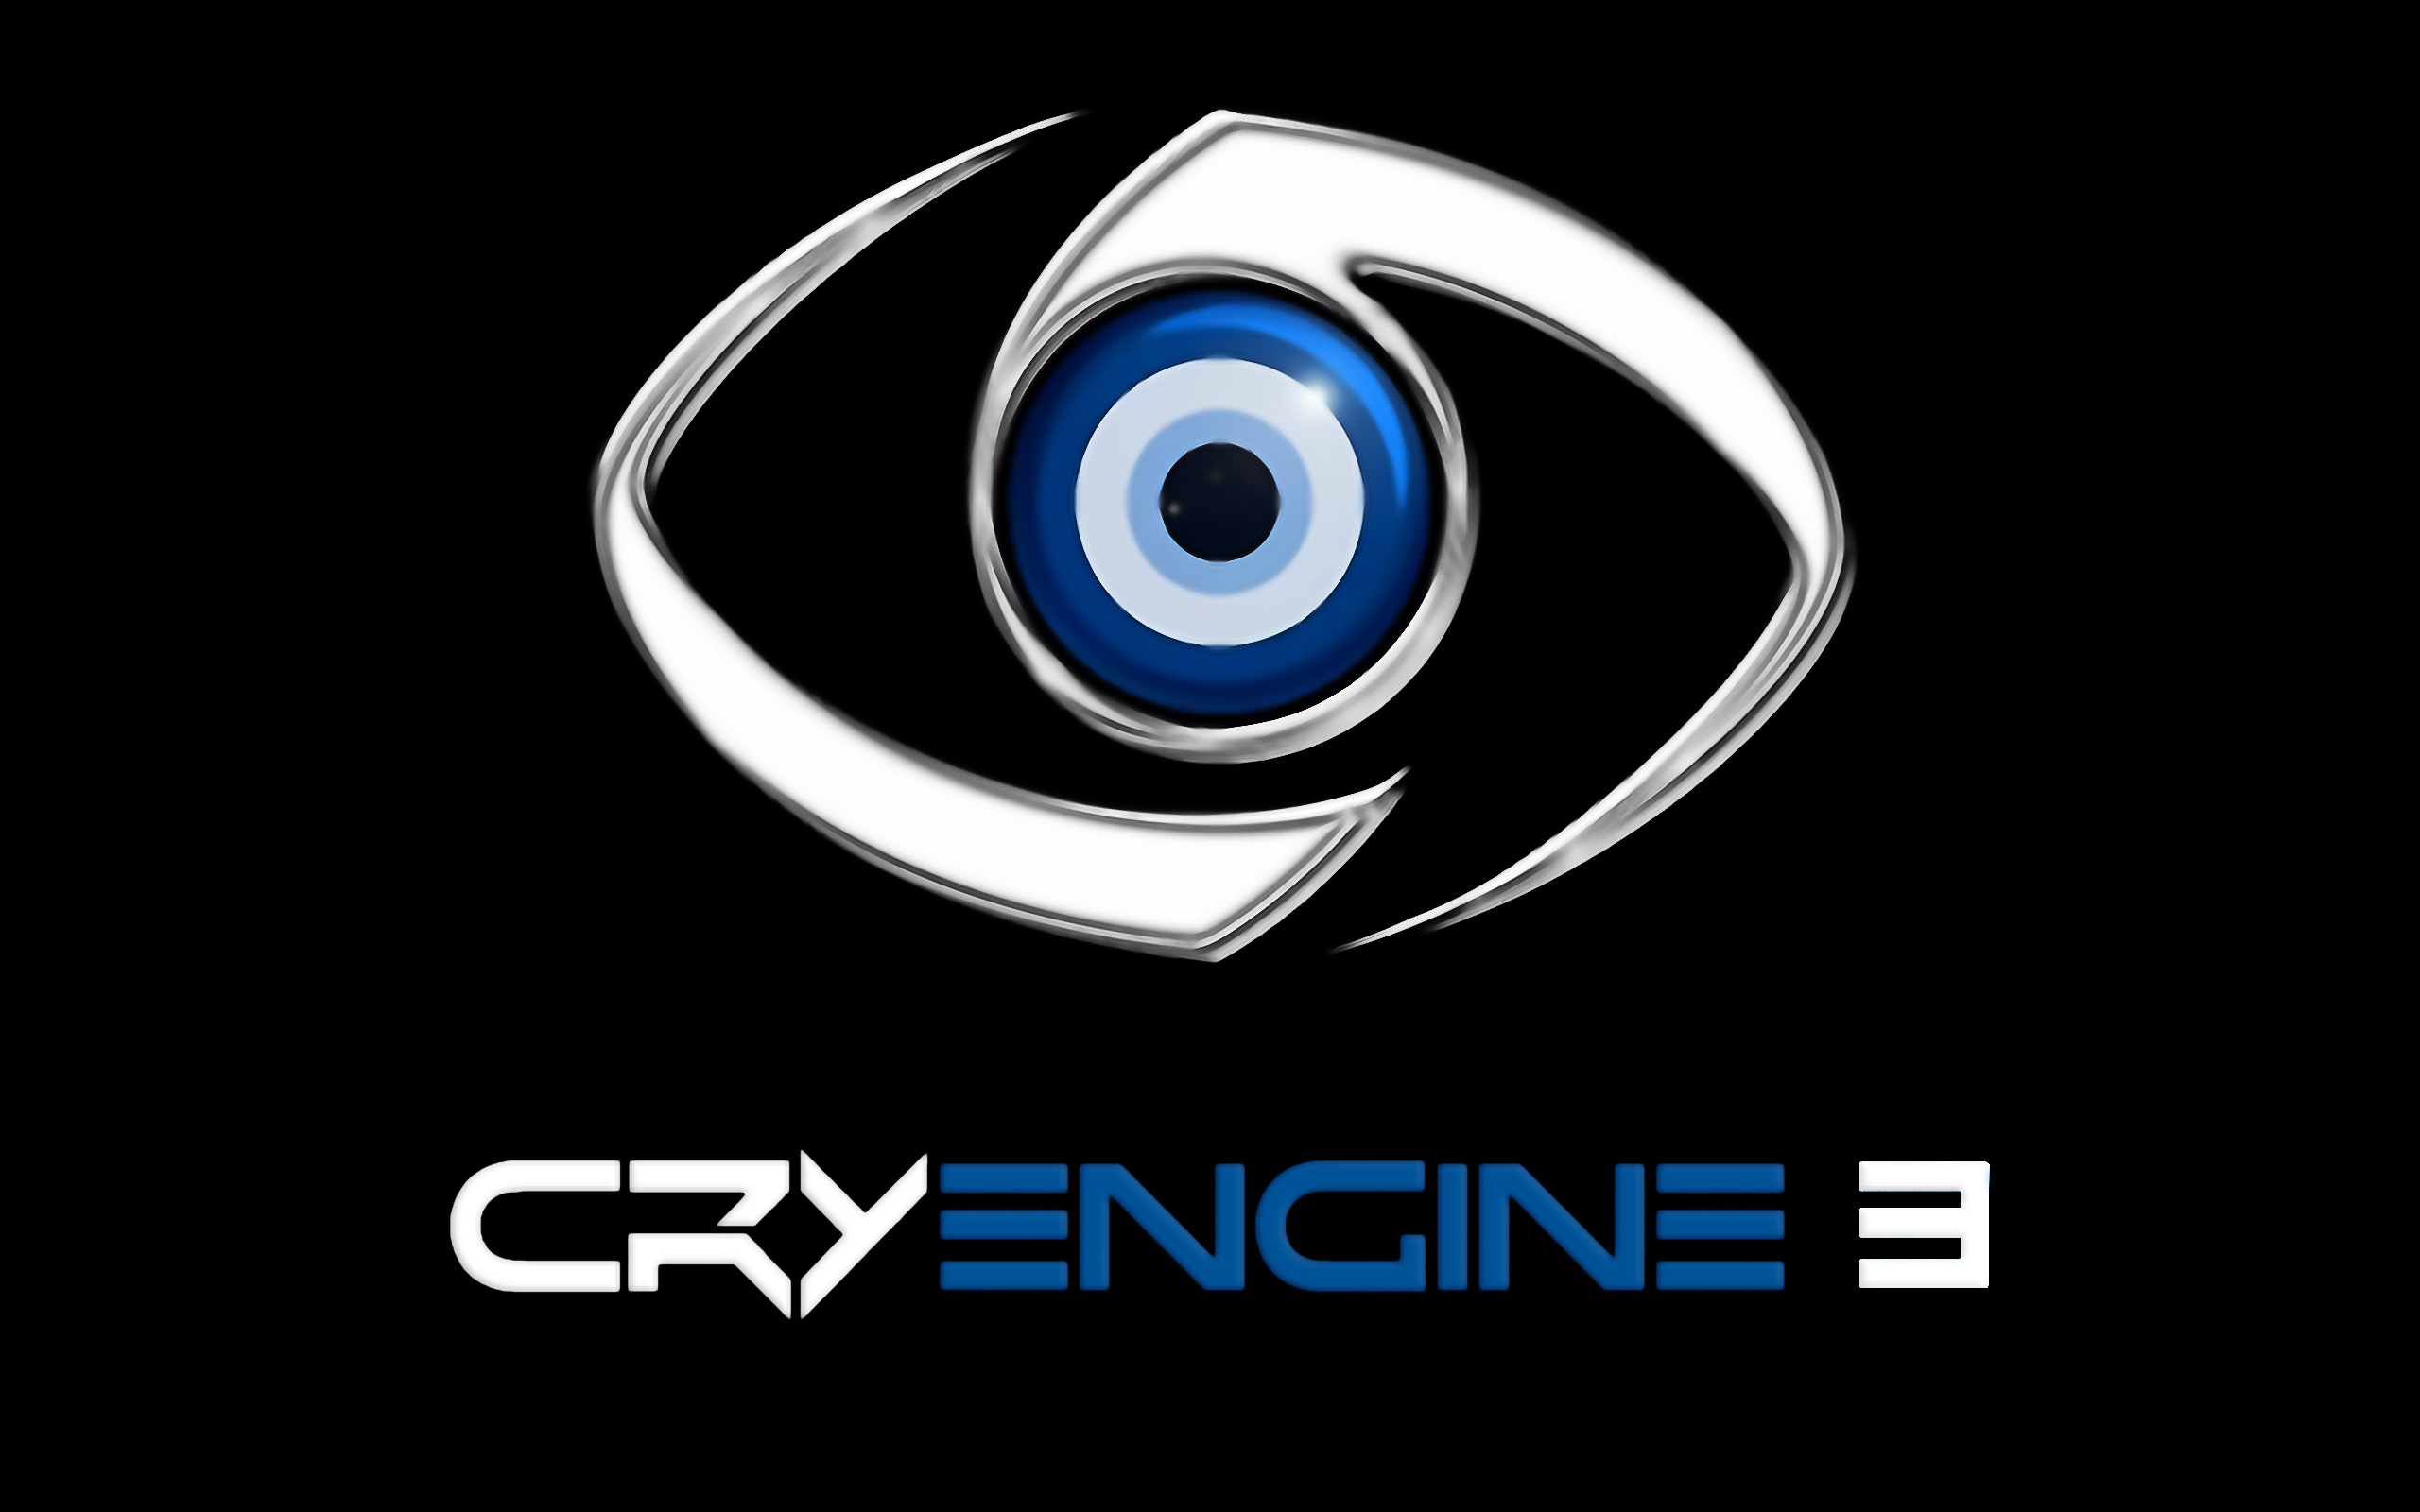 Cryengine 3 documentation and help files news level for Cryengine 3 architecture